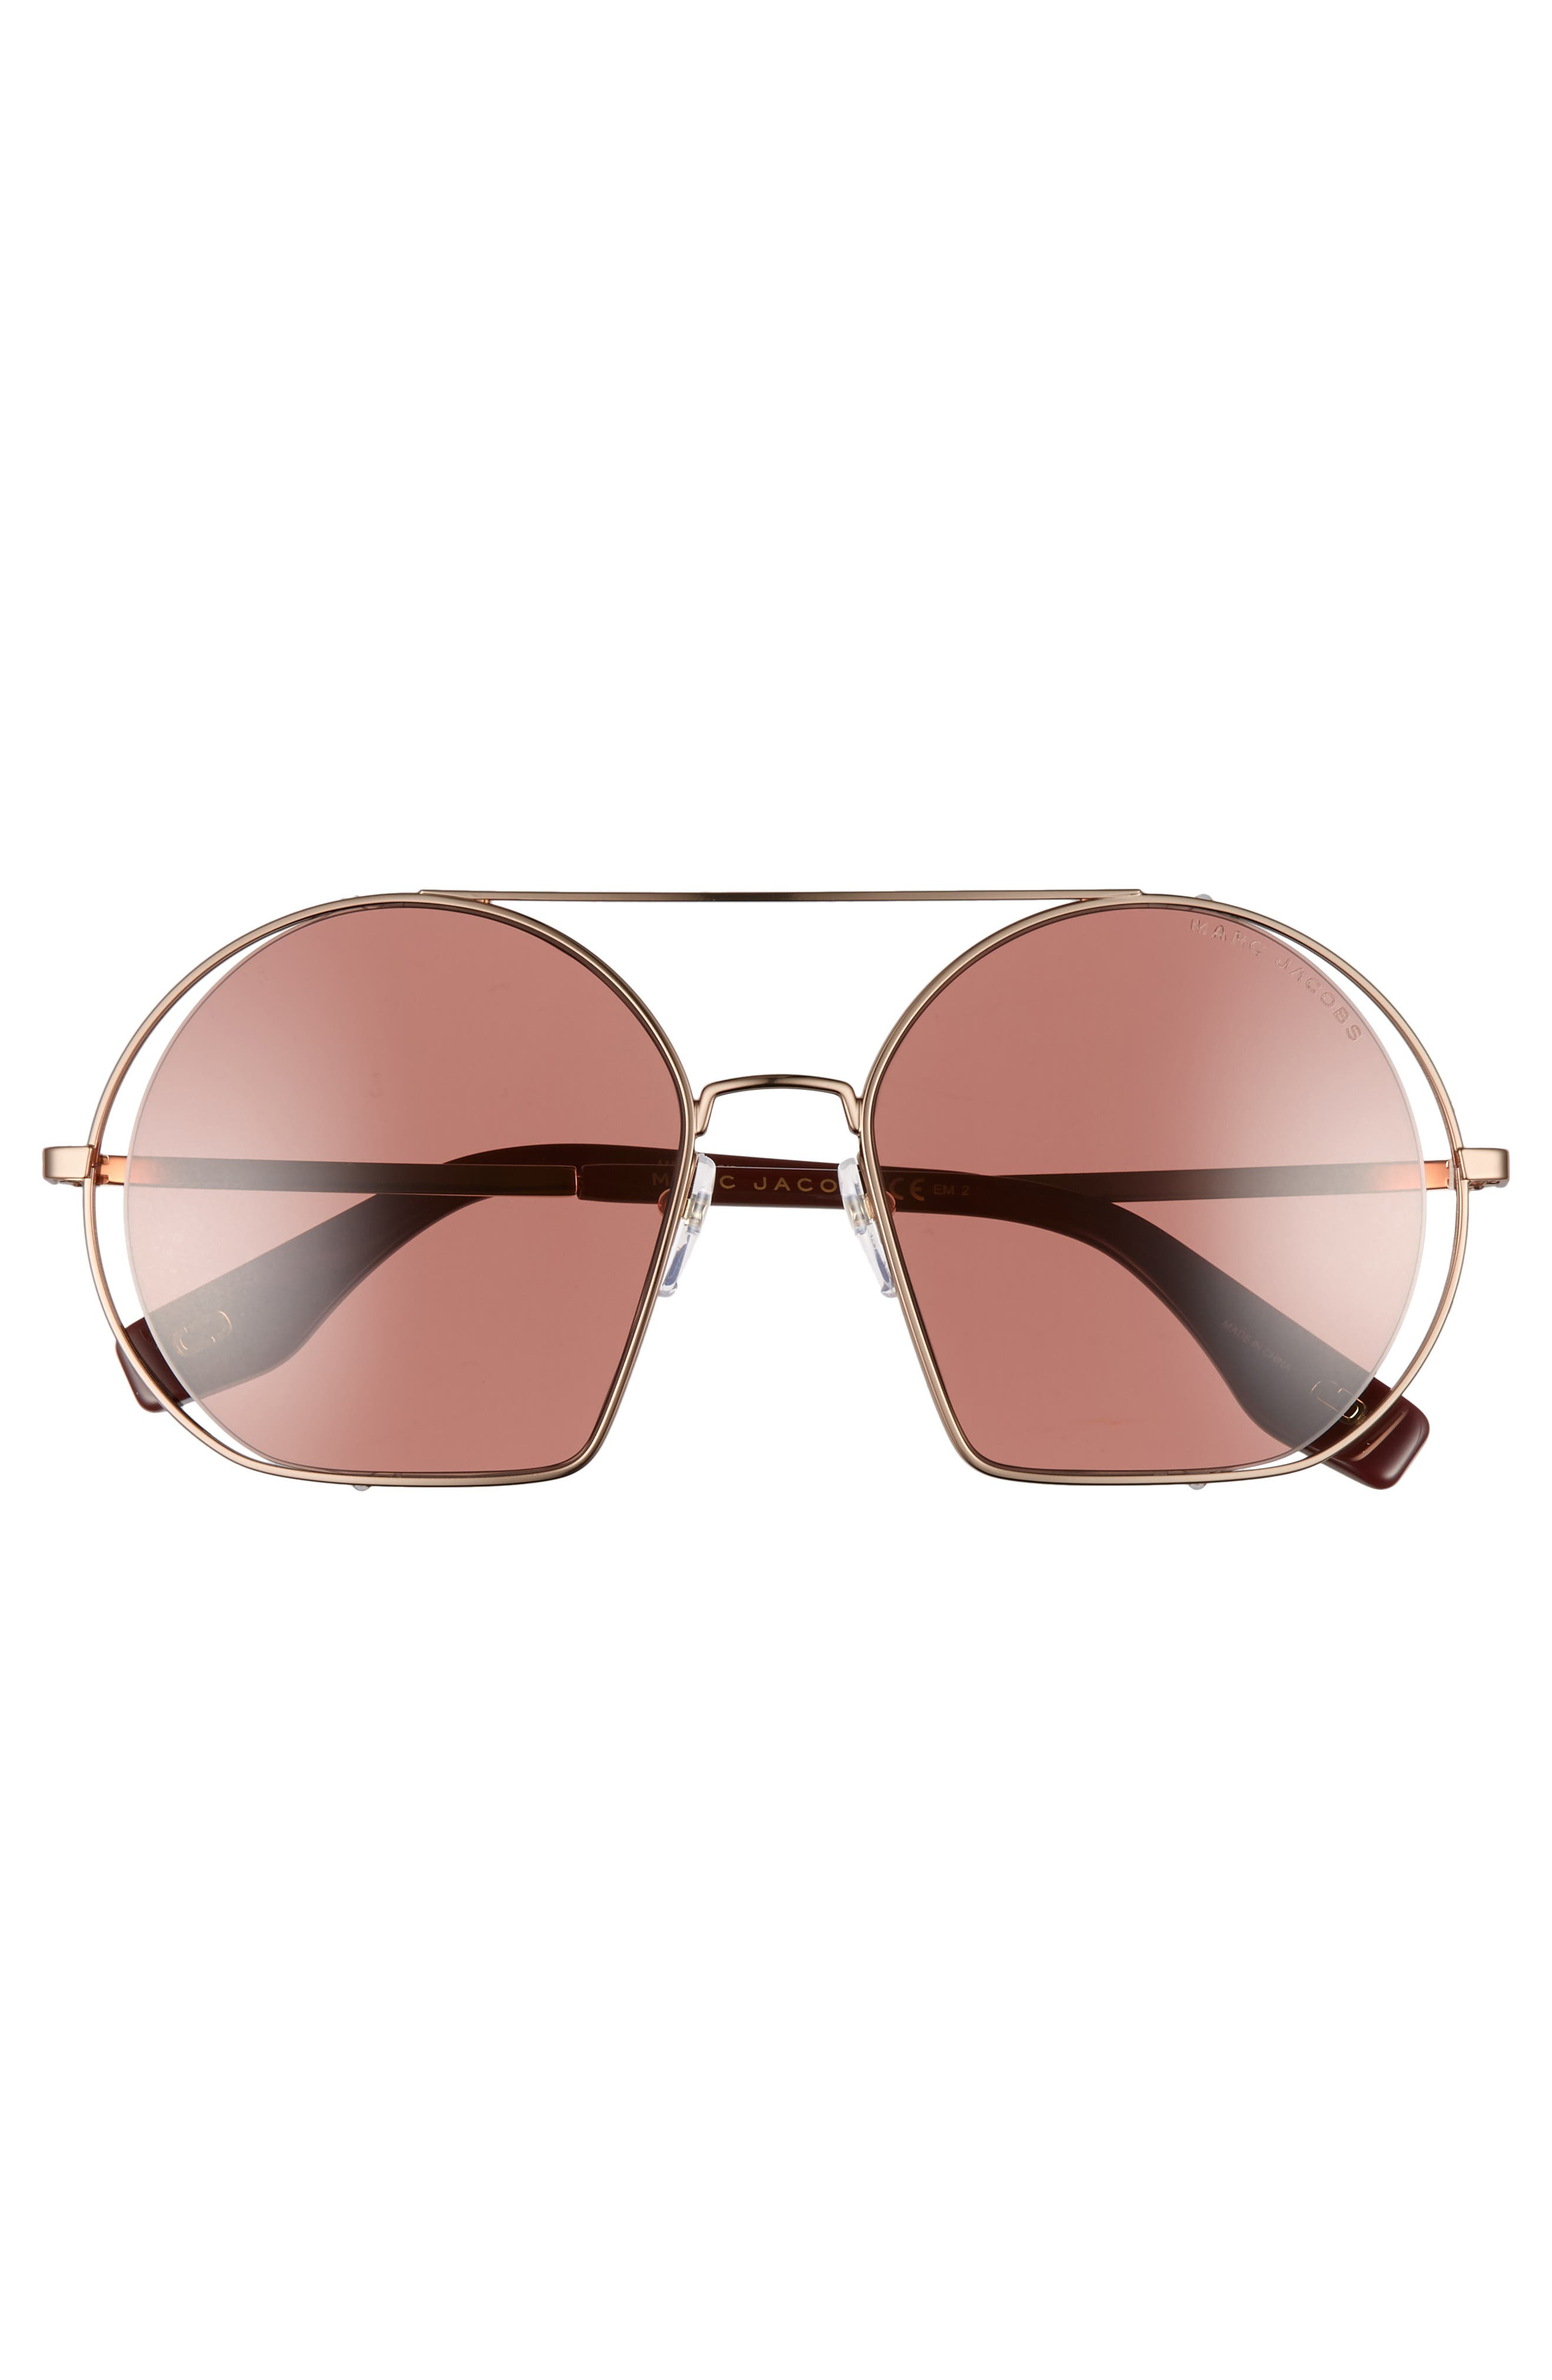 56mm Round Sunglasses,                             Alternate thumbnail 3, color,                             GOLD/ BURGUNDY